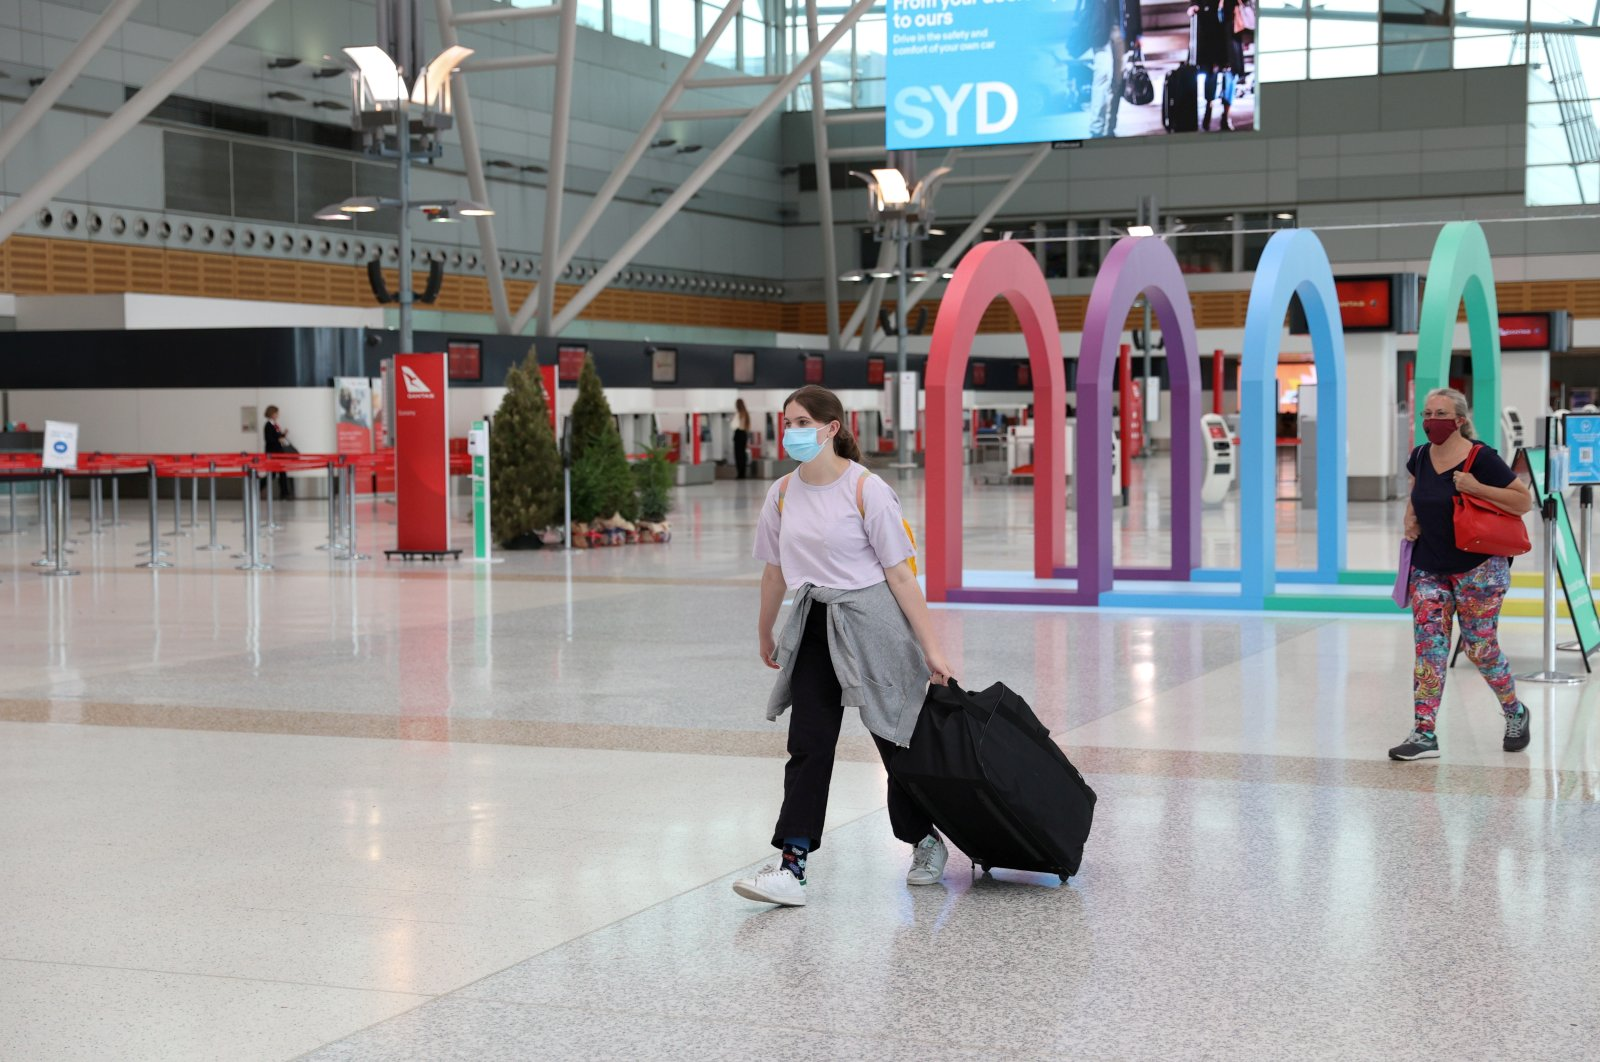 People wearing masks walk through a mostly empty domestic terminal at Sydney Airport in Sydney, Australia, Dec. 21, 2020.   (Reuters Photo)